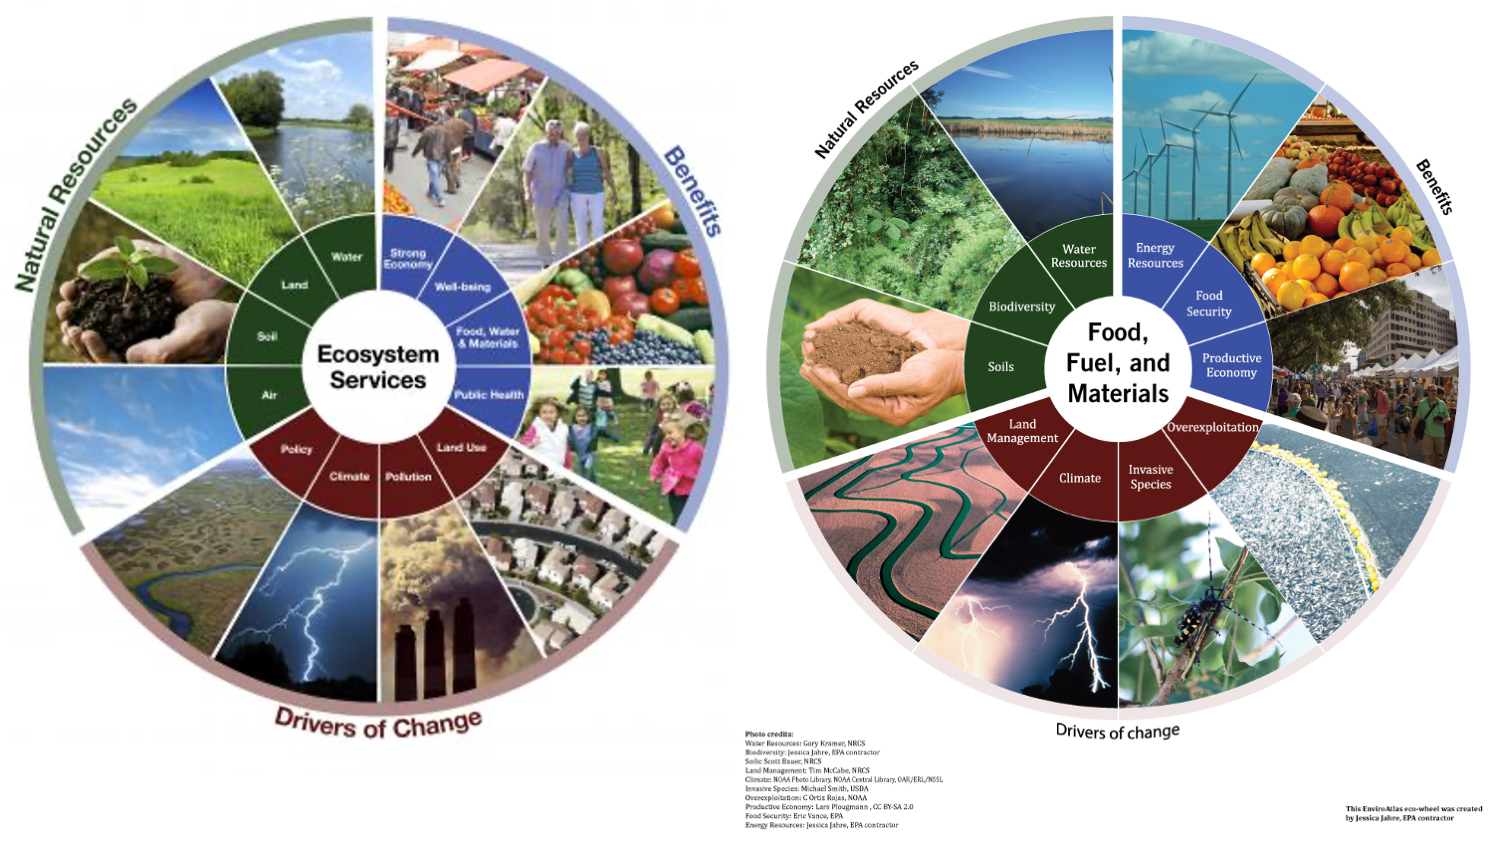 a visualization of the various ecosystem services